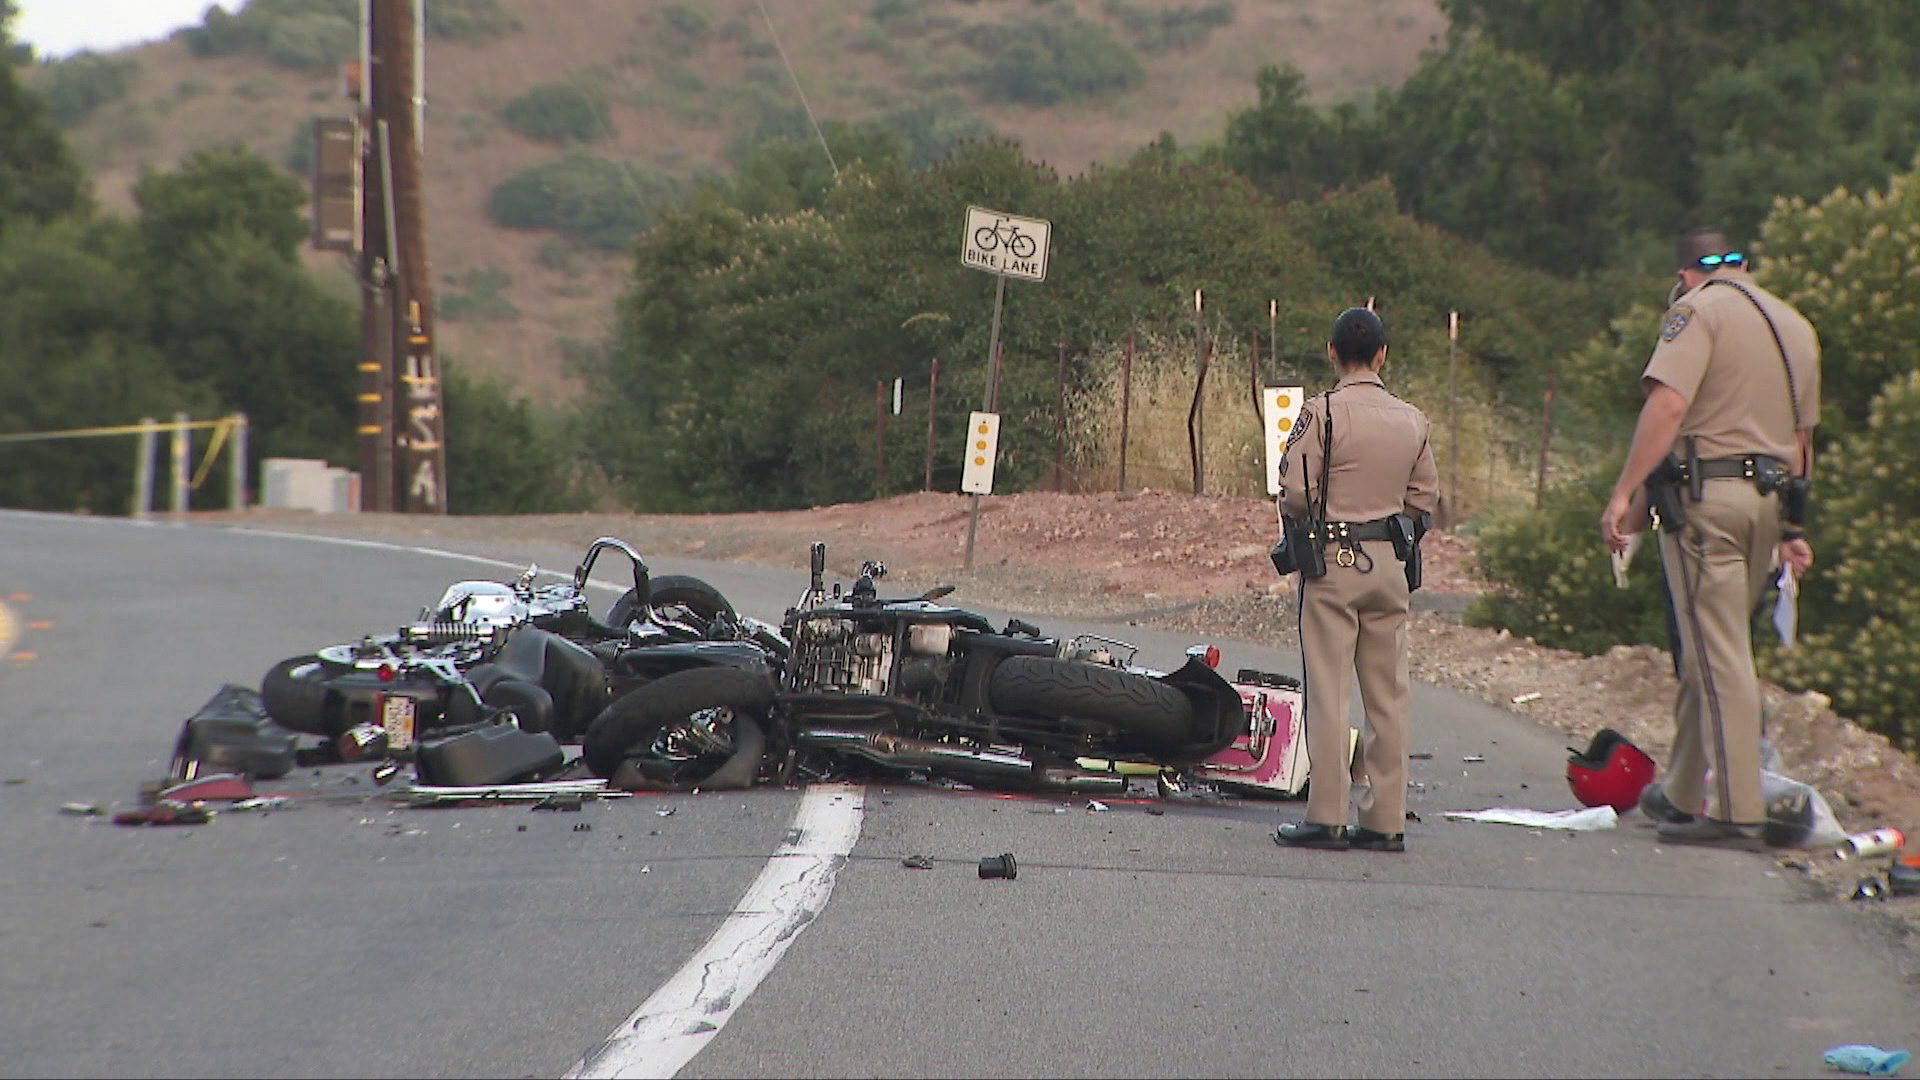 A head-on crash involving two motorcycles left four people dead on July 7, 2019. (Credit: KTLA)